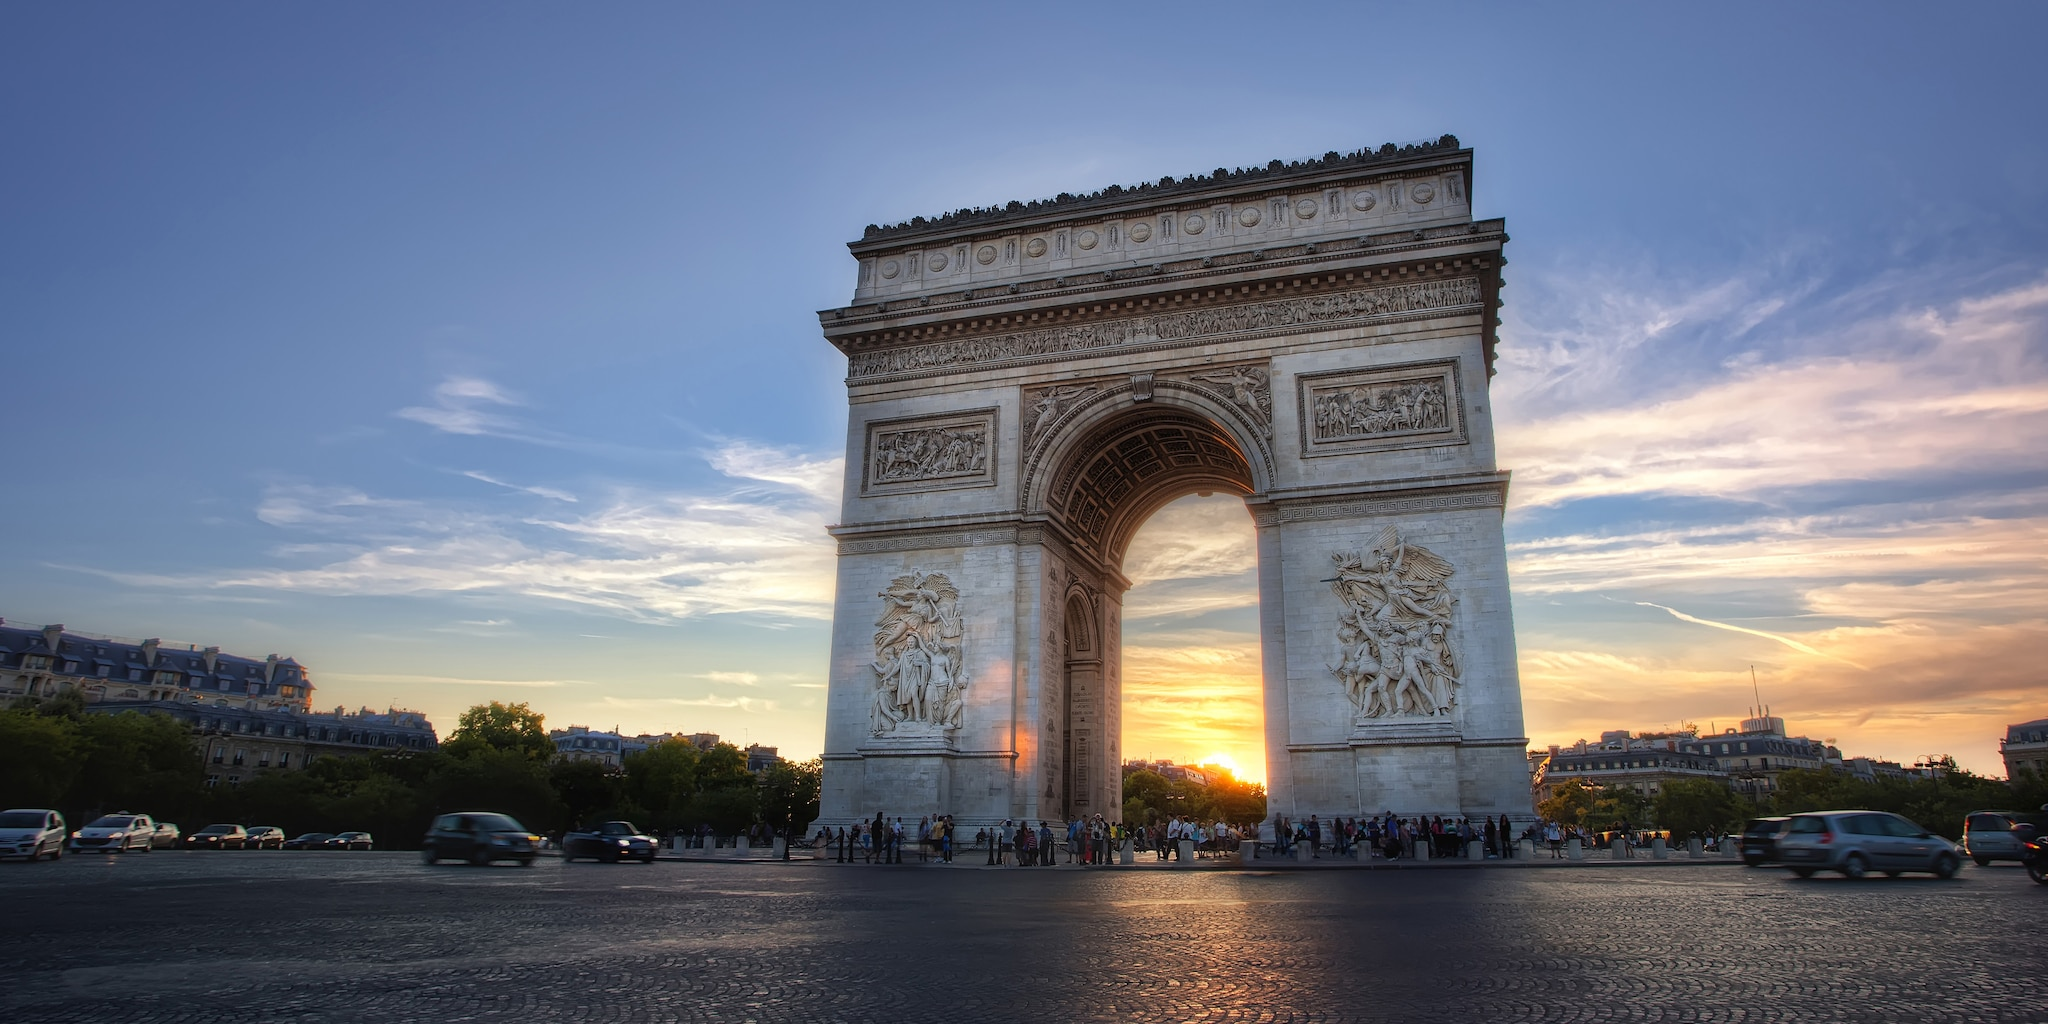 The Arc de Triomphe at sunset